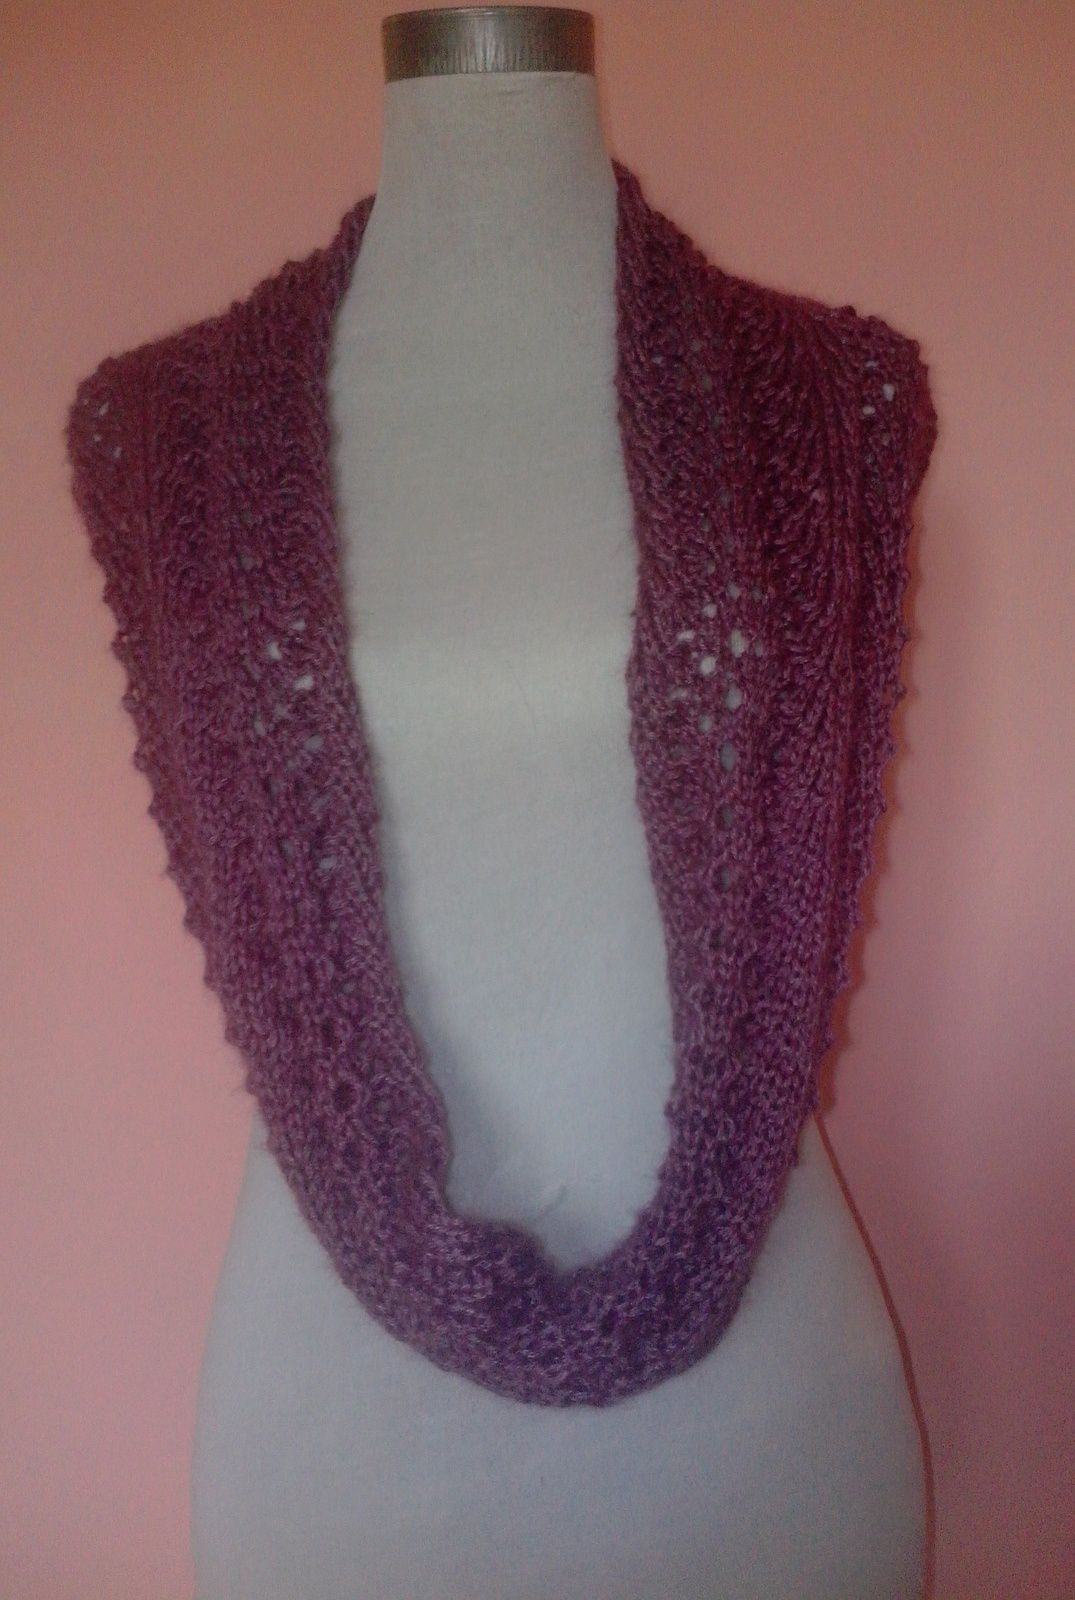 Snood or not snood ??